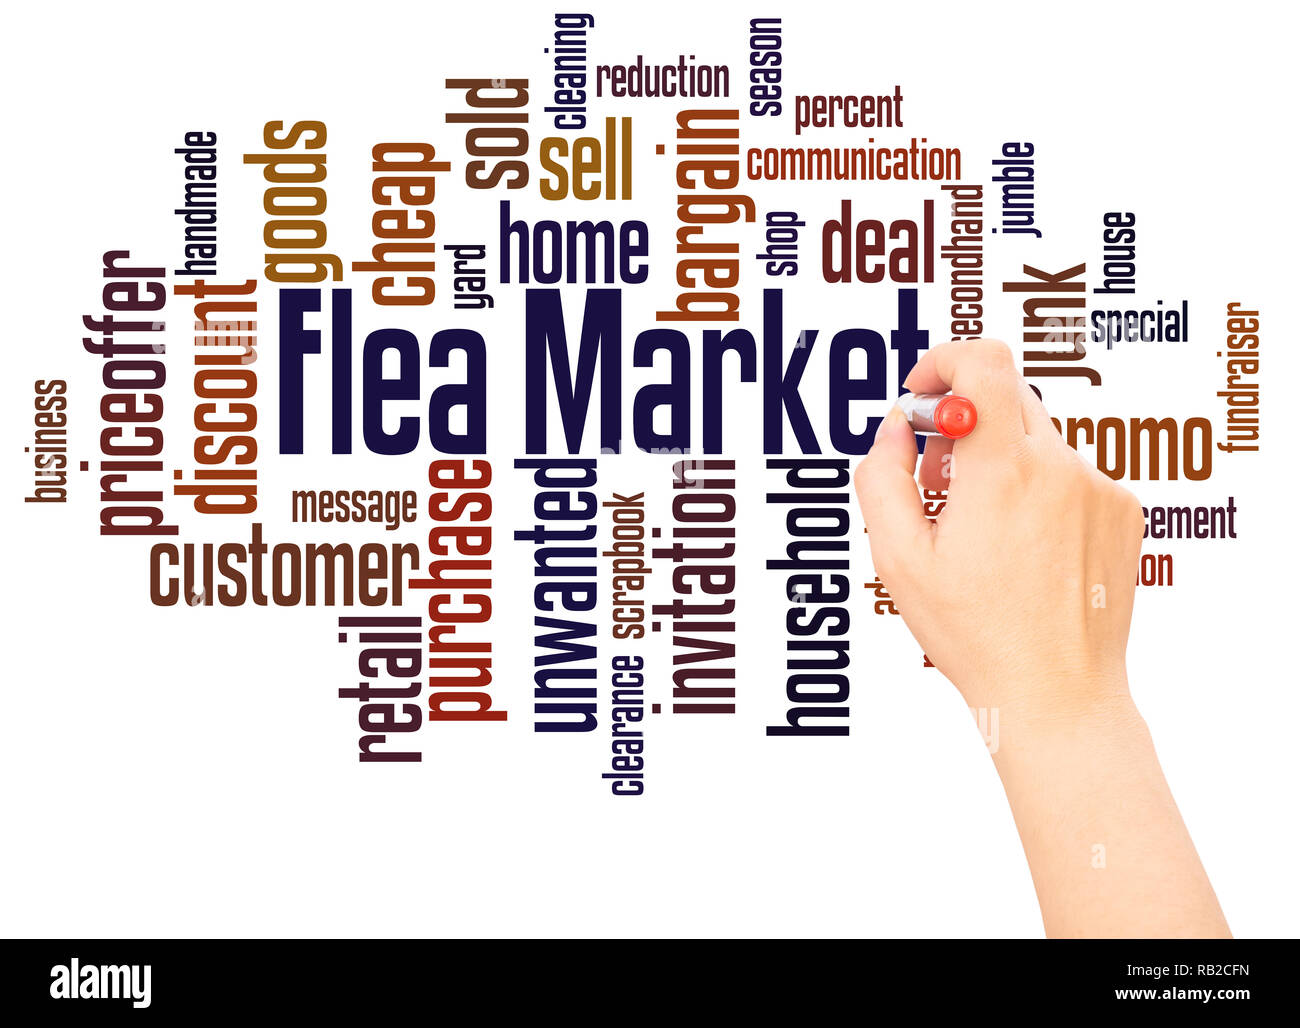 Flea Market word cloud hand writing concept on white background. - Stock Image